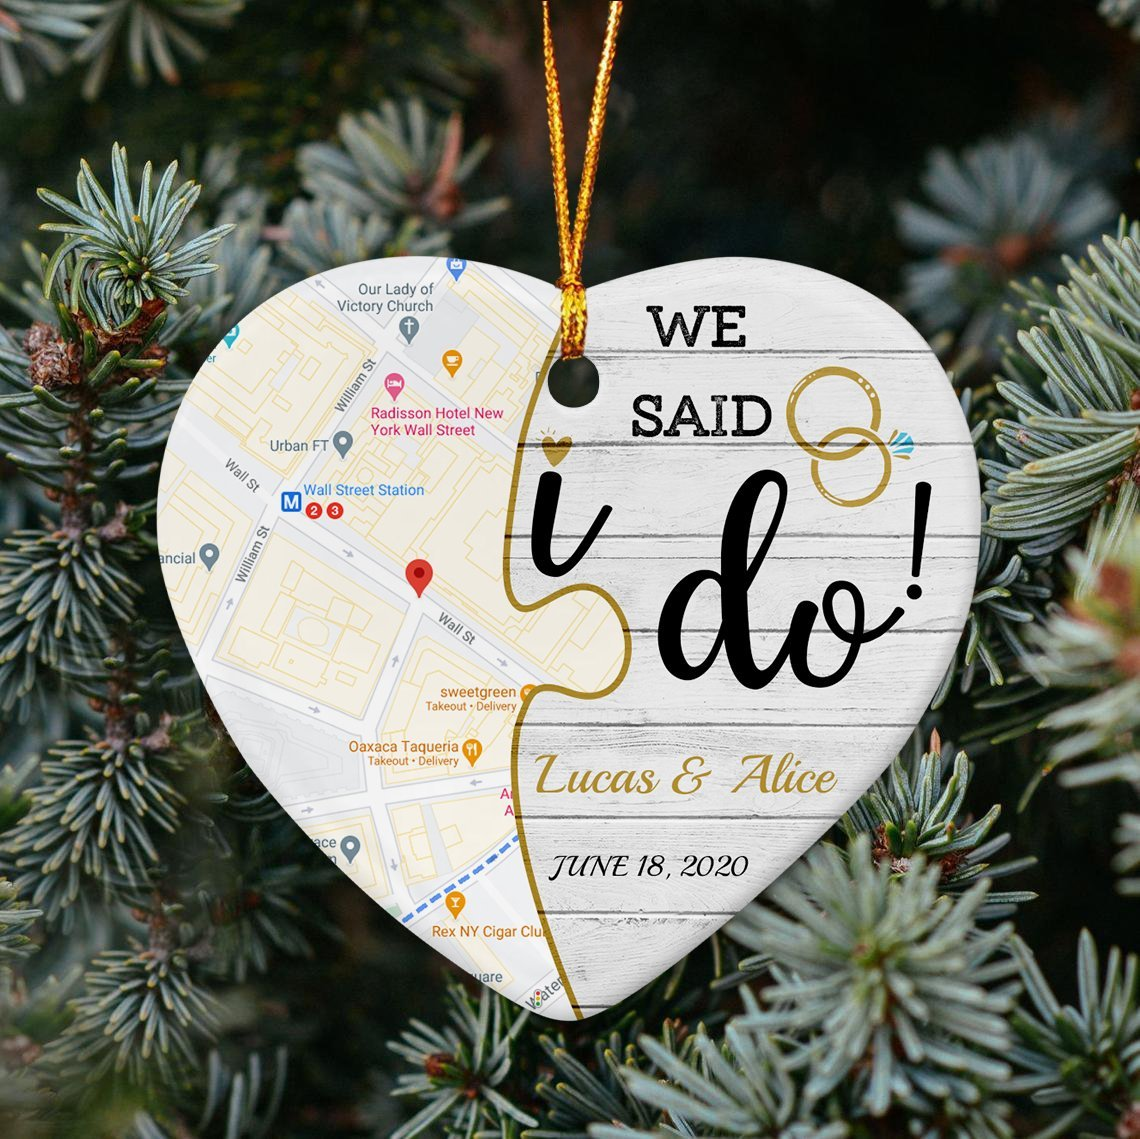 Just put your wedding date, location, and names, you can create your own love ornament in the vintage style for the special anniversary preparation. This custom map ornament will recall the happily precious wedding moment, making your partner touching and fluttering.